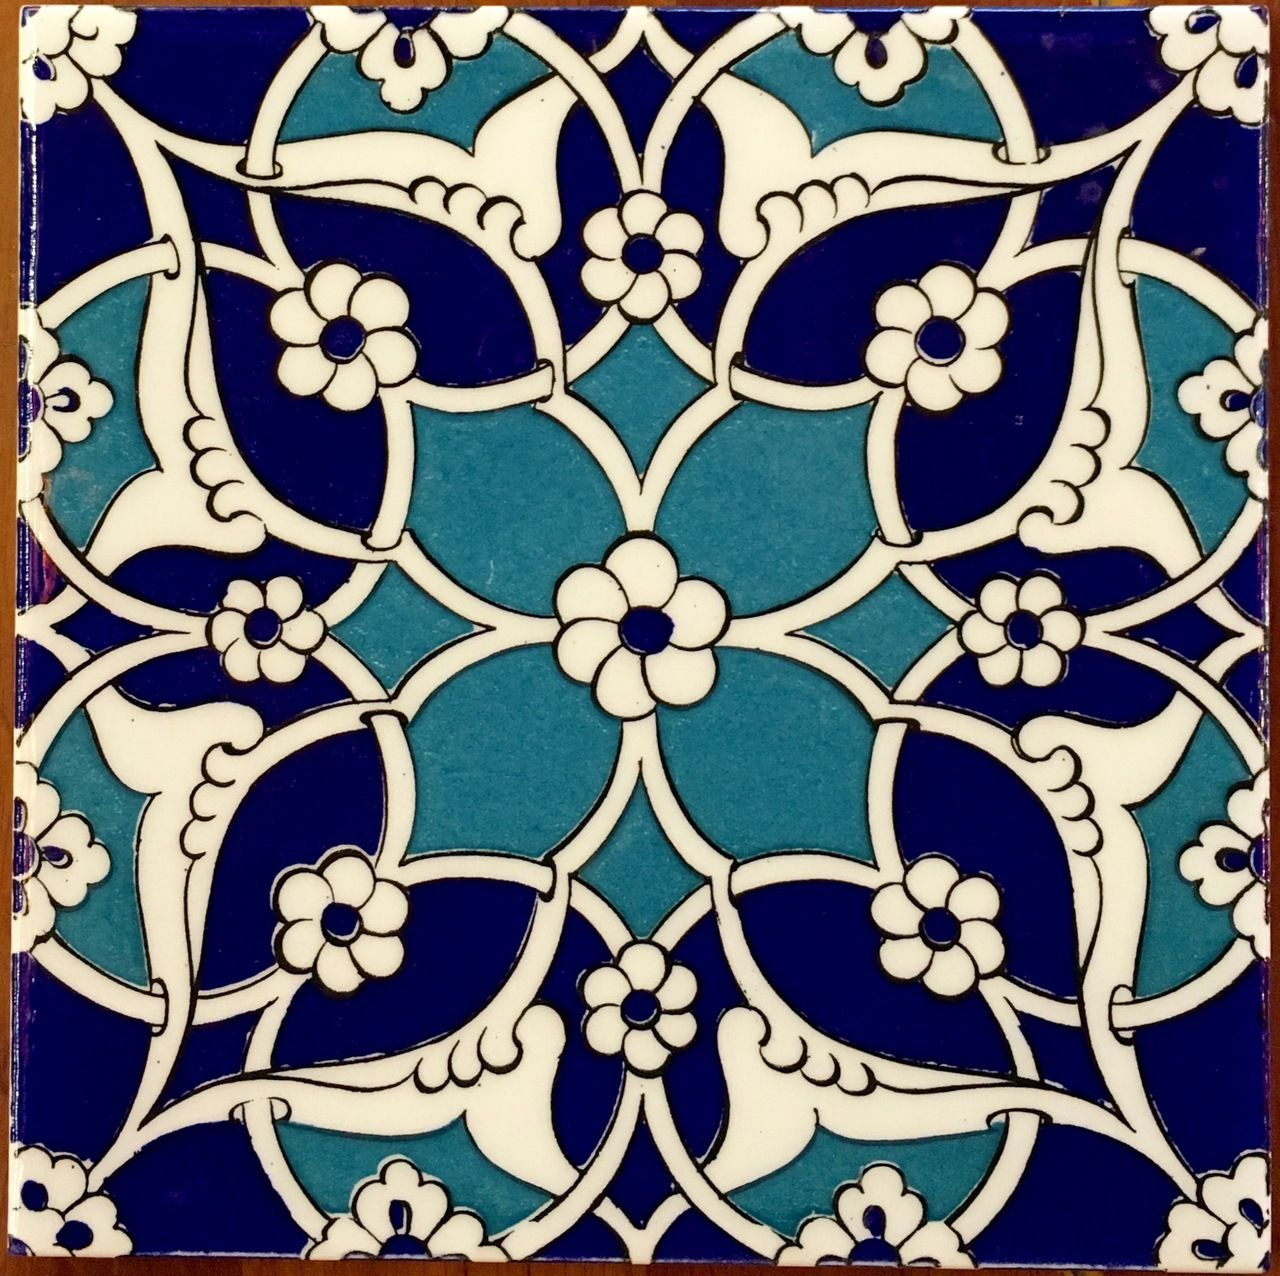 Ceramic Wall Tiles: Afortime | Ceramic wall tiles, Wall tiles and Walls